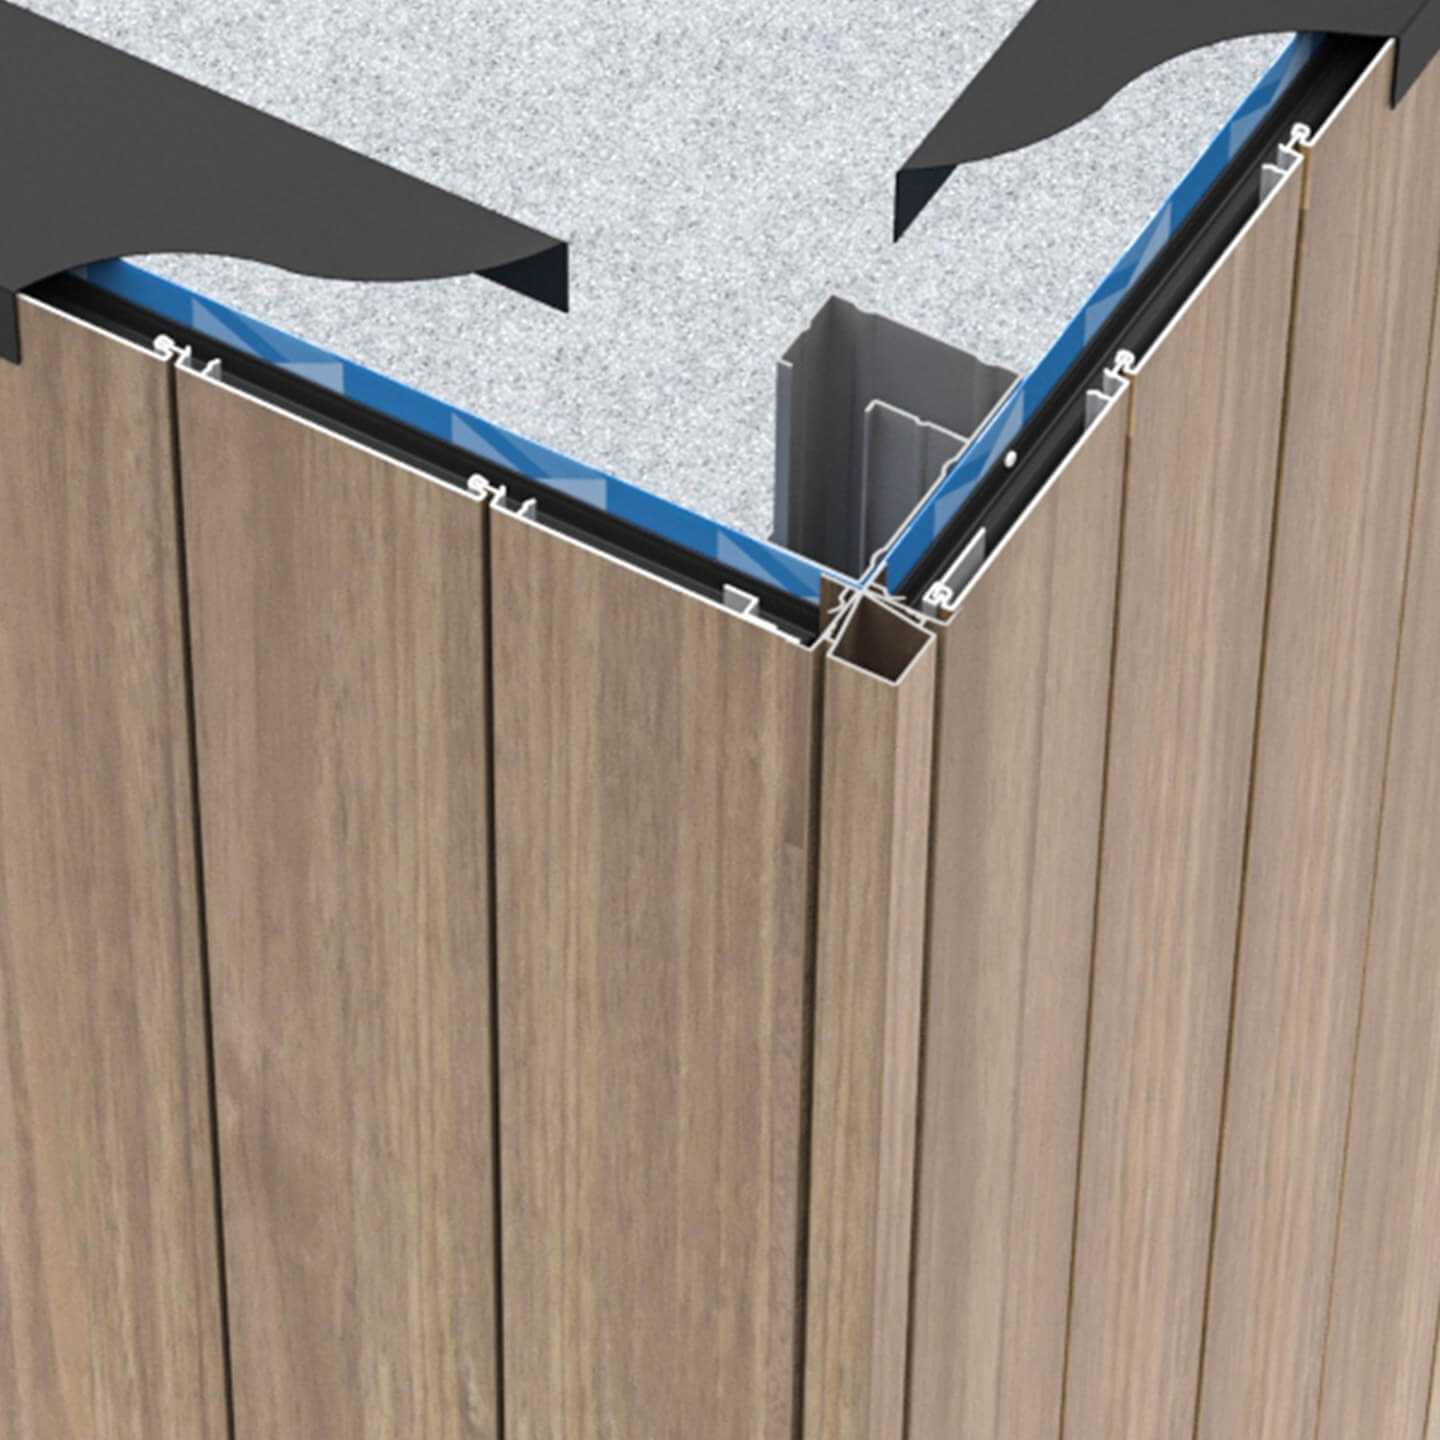 Click-on Cladding Corners